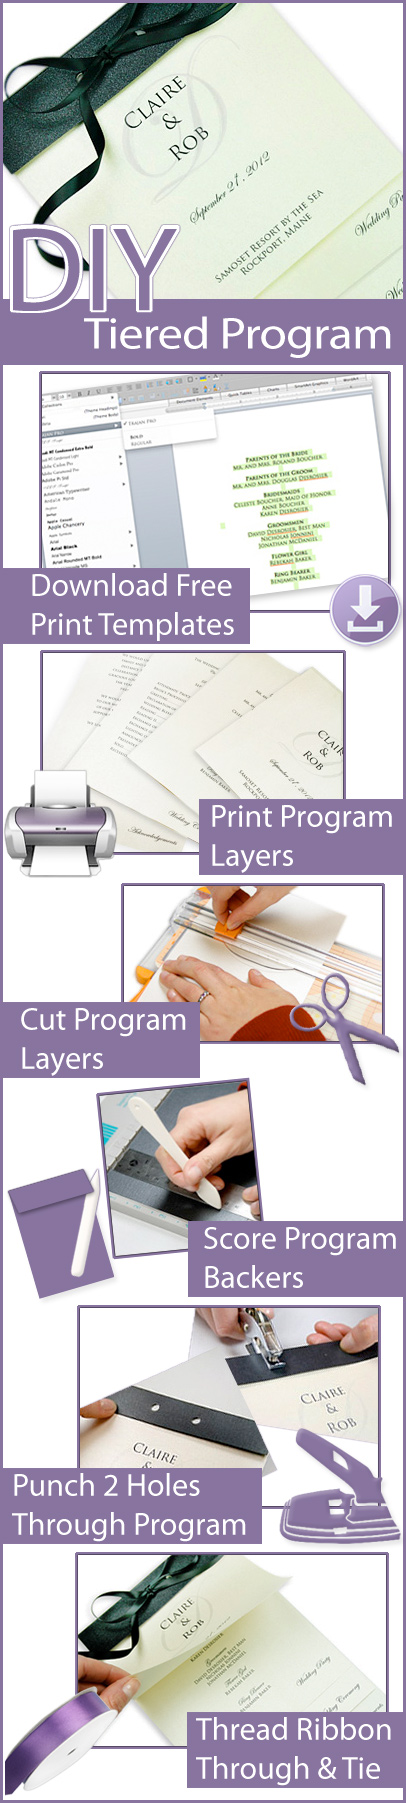 How to make a tiered and layered program fan infographic